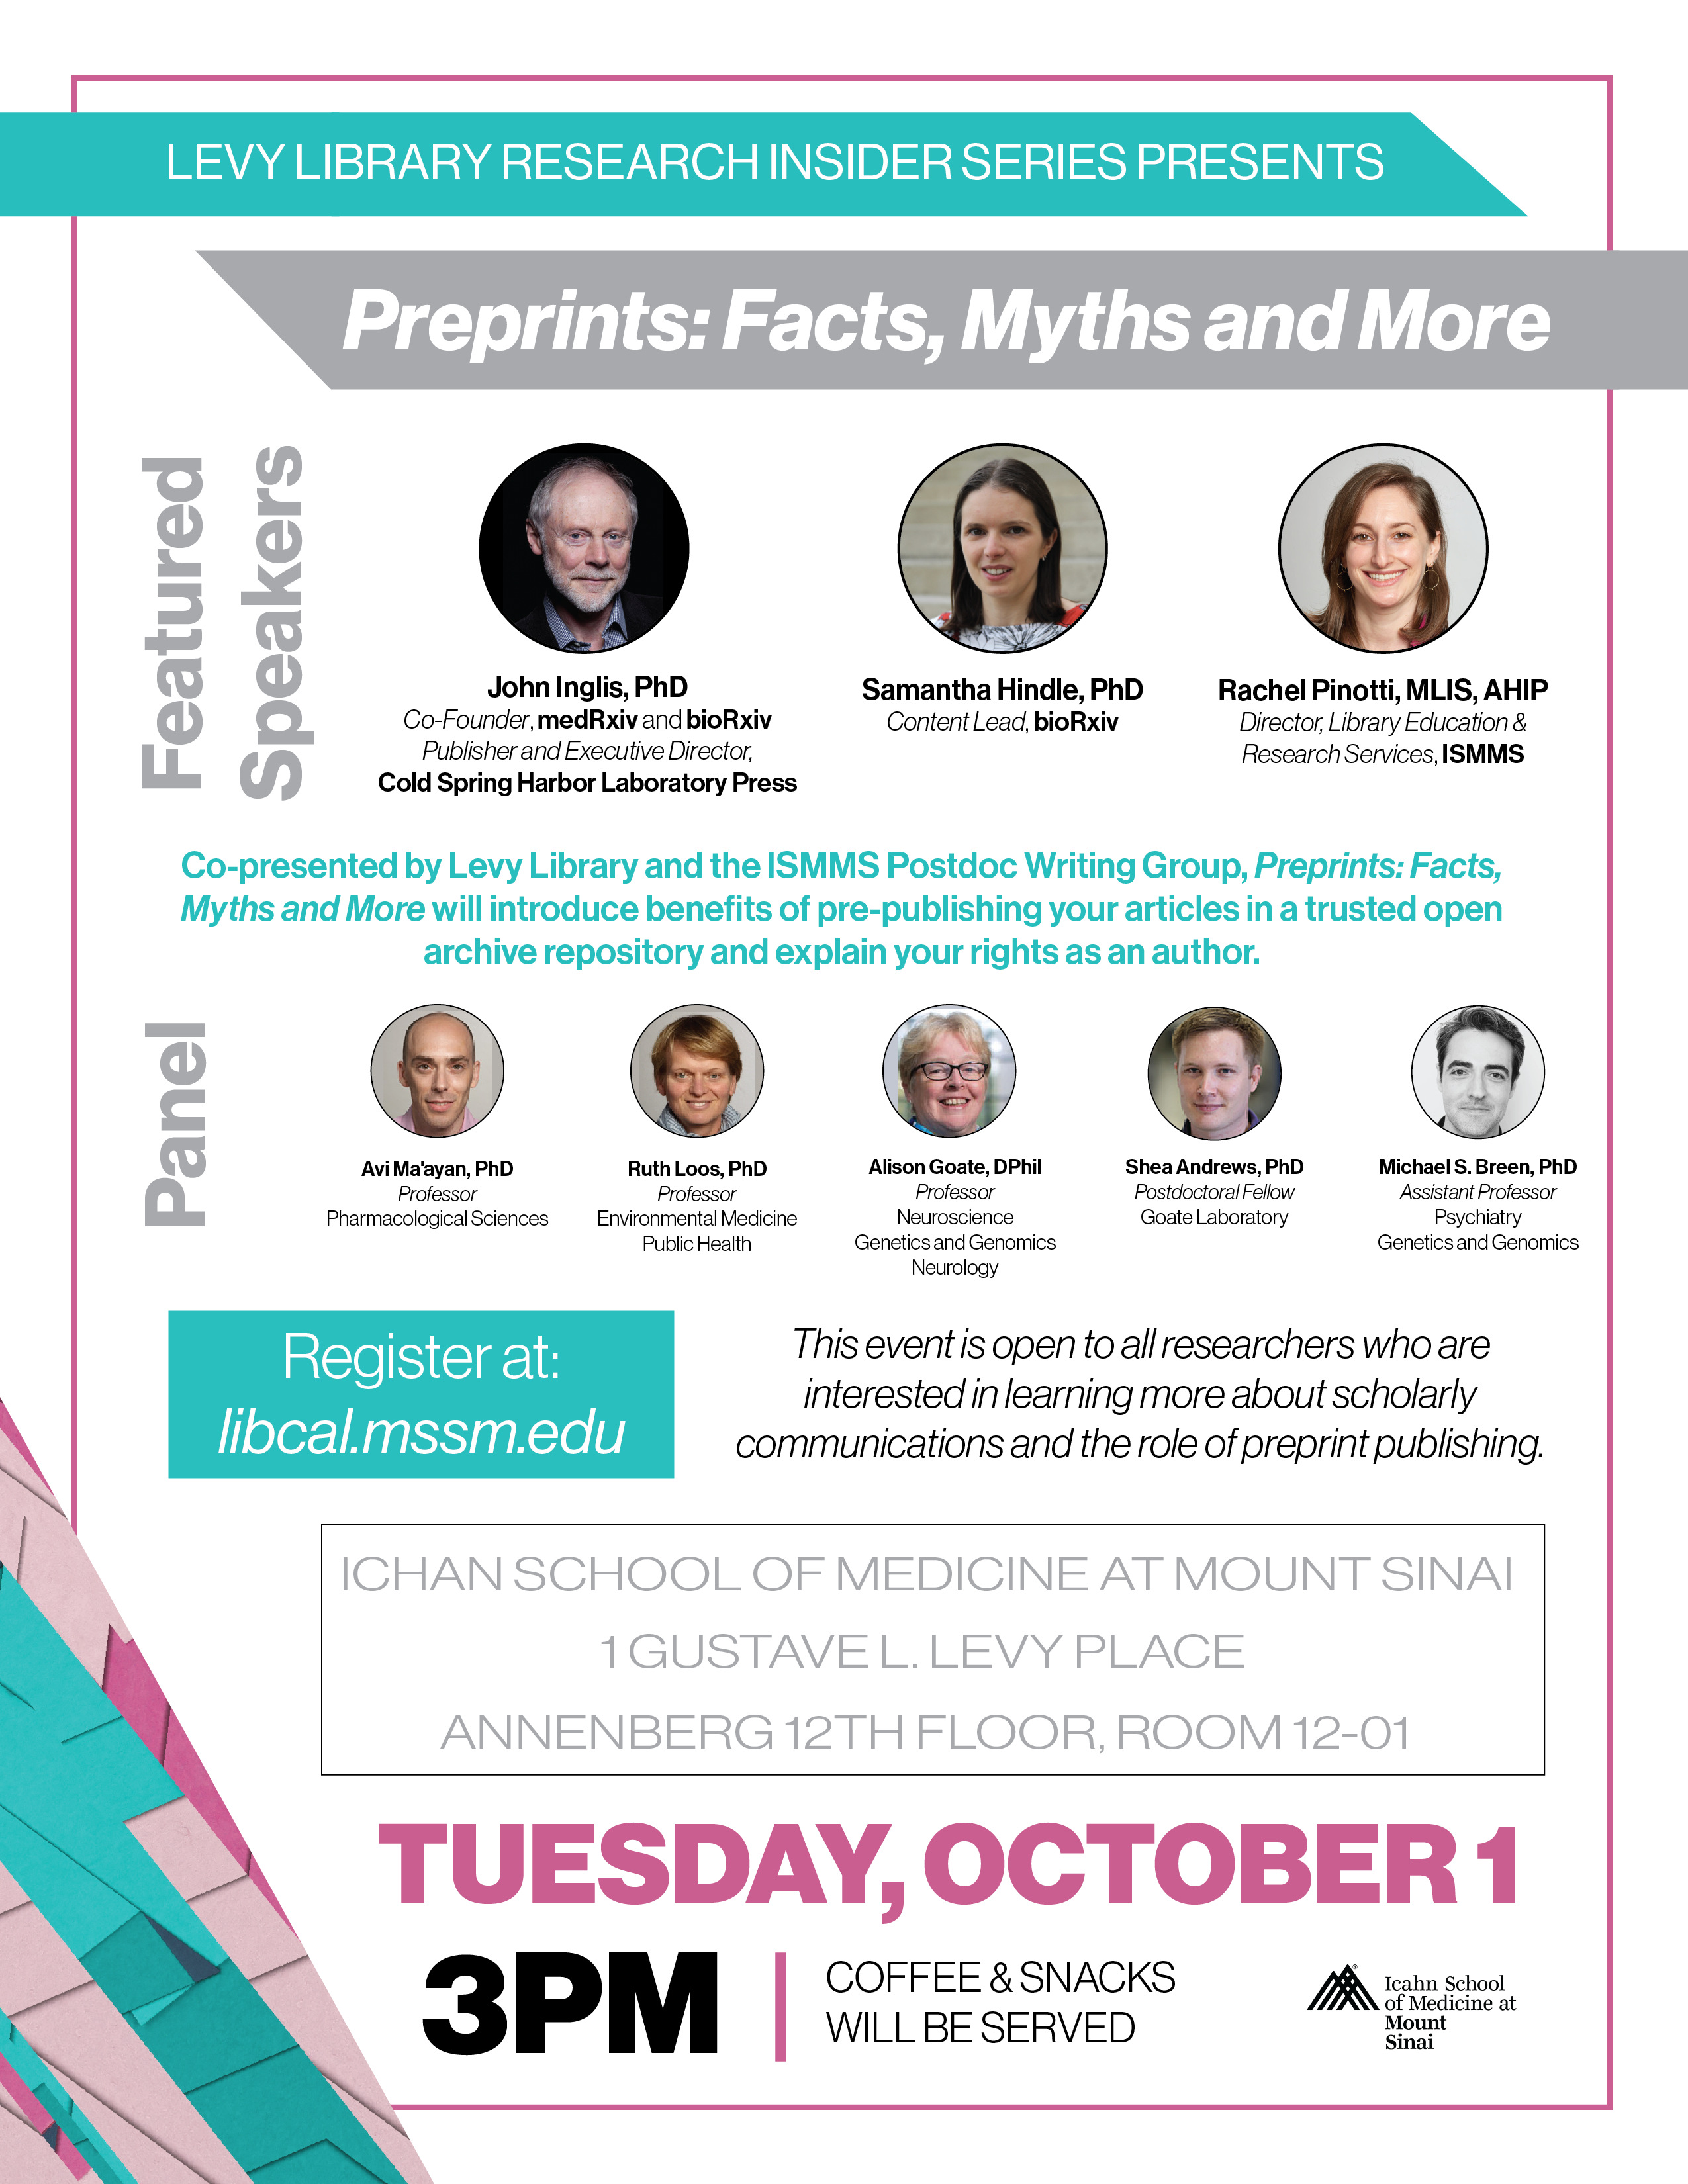 Preprints: Facts, Myths and More